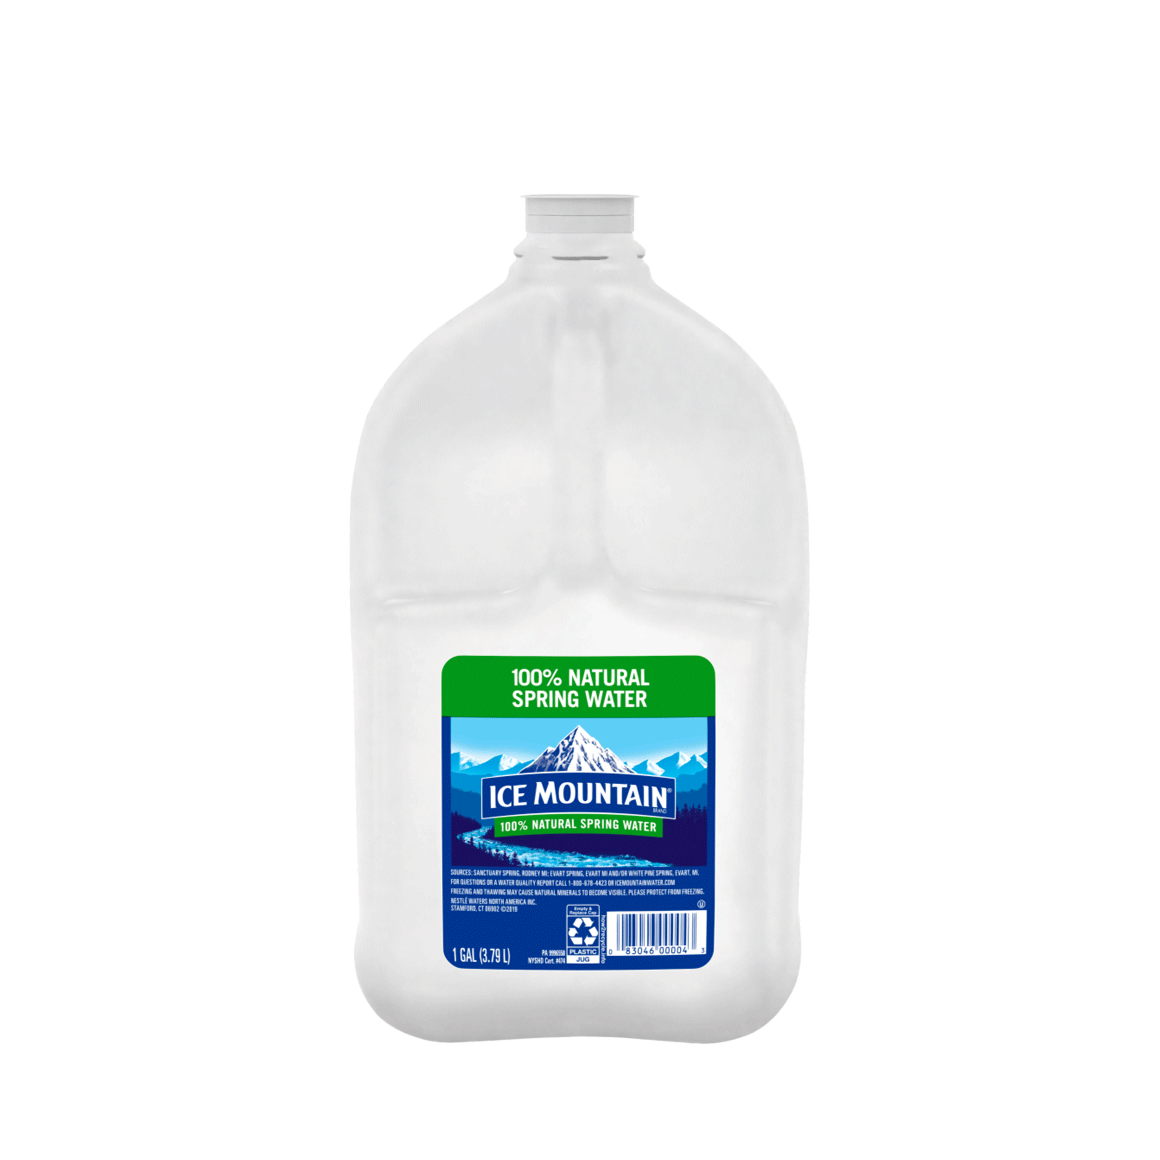 Ice Mountain® 100% Natural Spring Water with Handle Image2